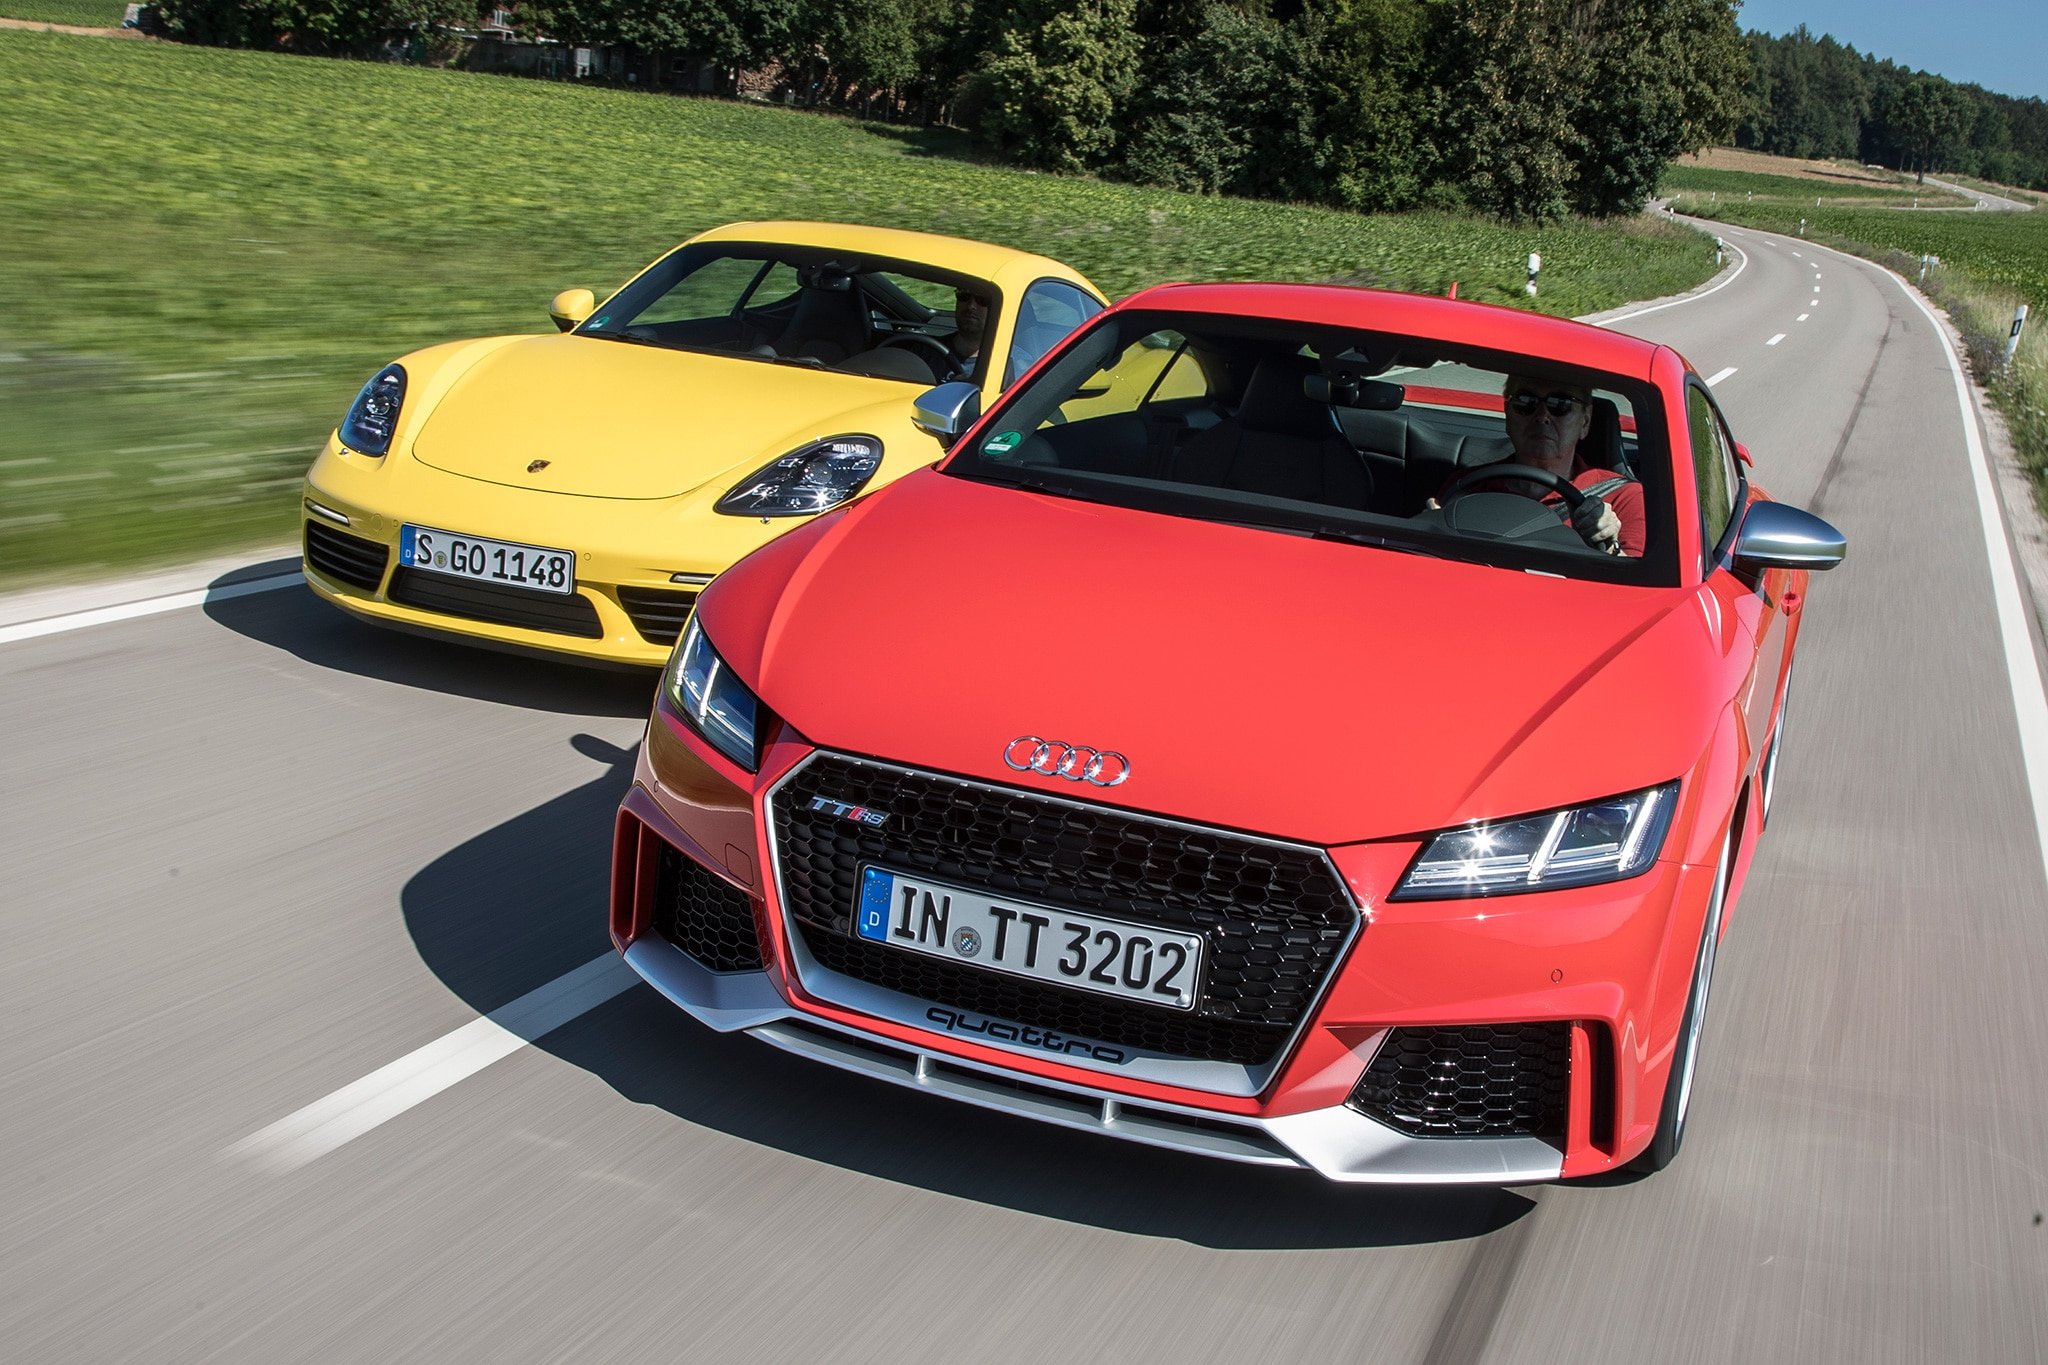 2018 Audi TT RS Vs 2017 Porsche Cayman S 01